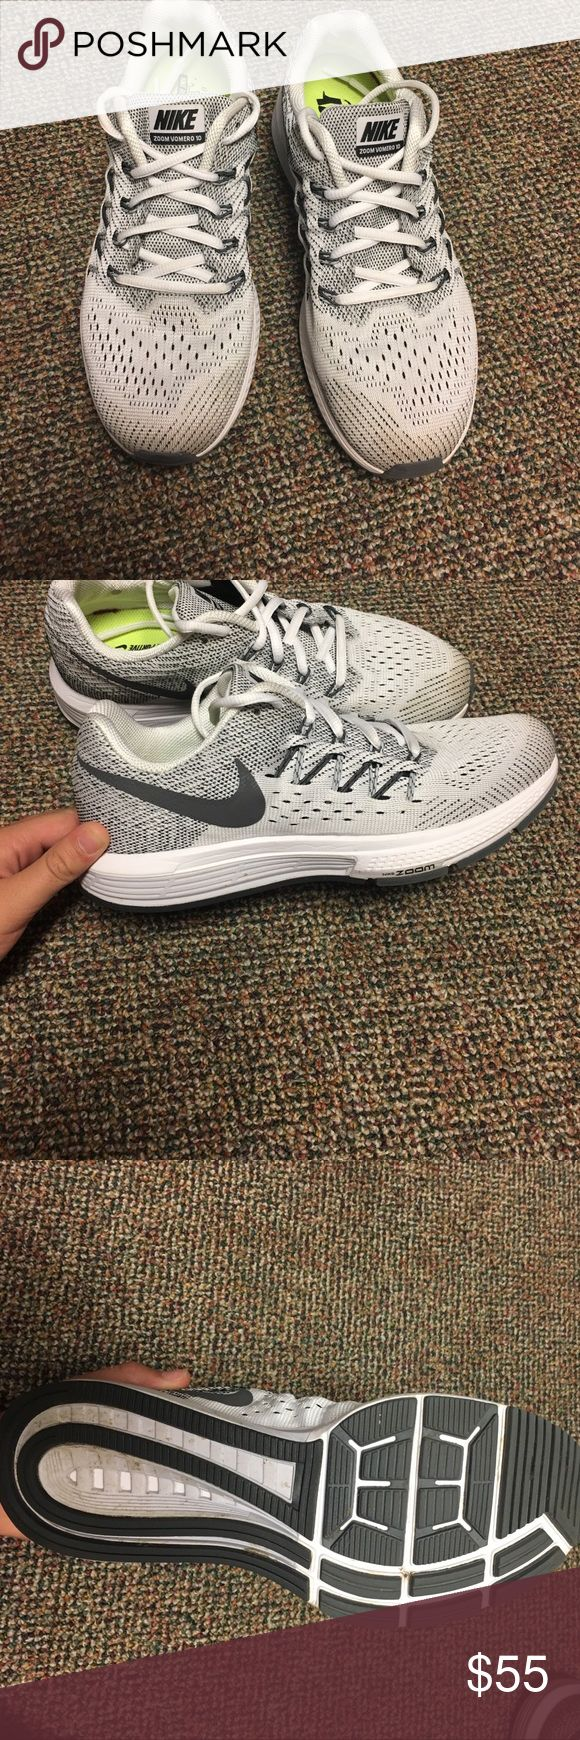 Nike Zoom Vomero 10 Super comfortable, only worn twice, in near perfect condition! I am open to reasonable offers or trades! Let me know if you have any questions! Nike Shoes Athletic Shoes